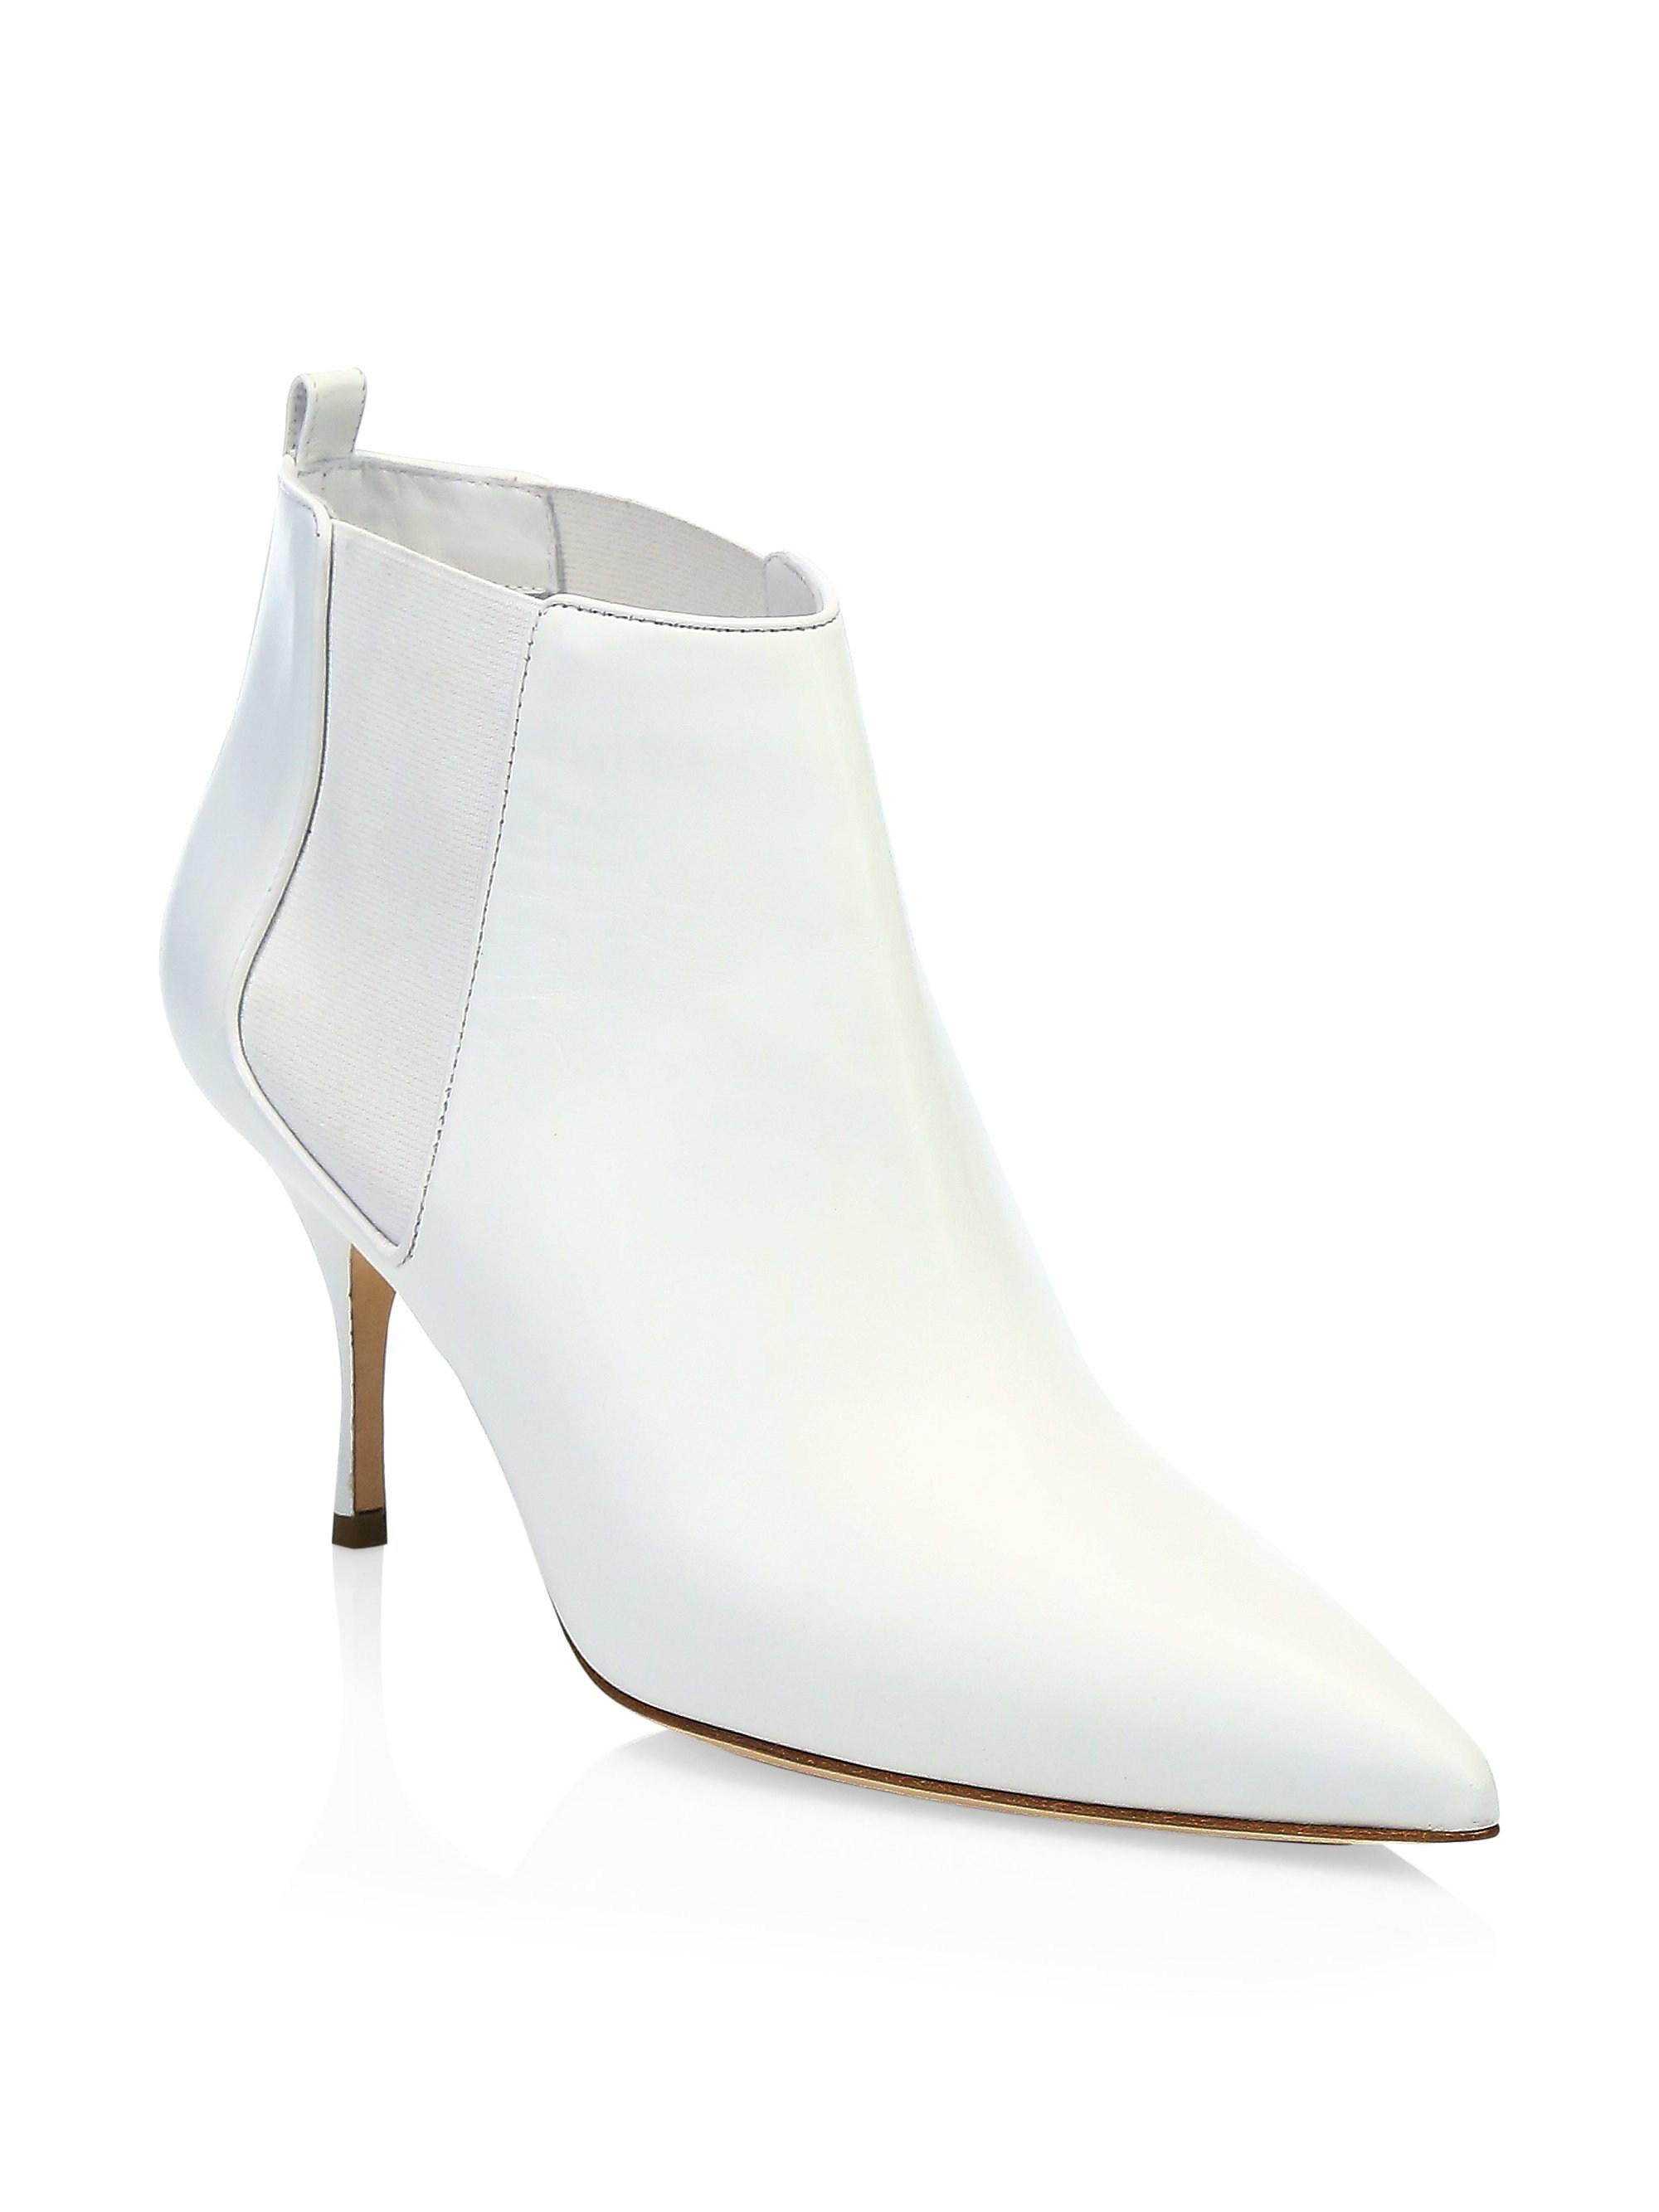 07aac7676a9e0 Manolo Blahnik Dildi 70mm Leather Booties in White - Lyst